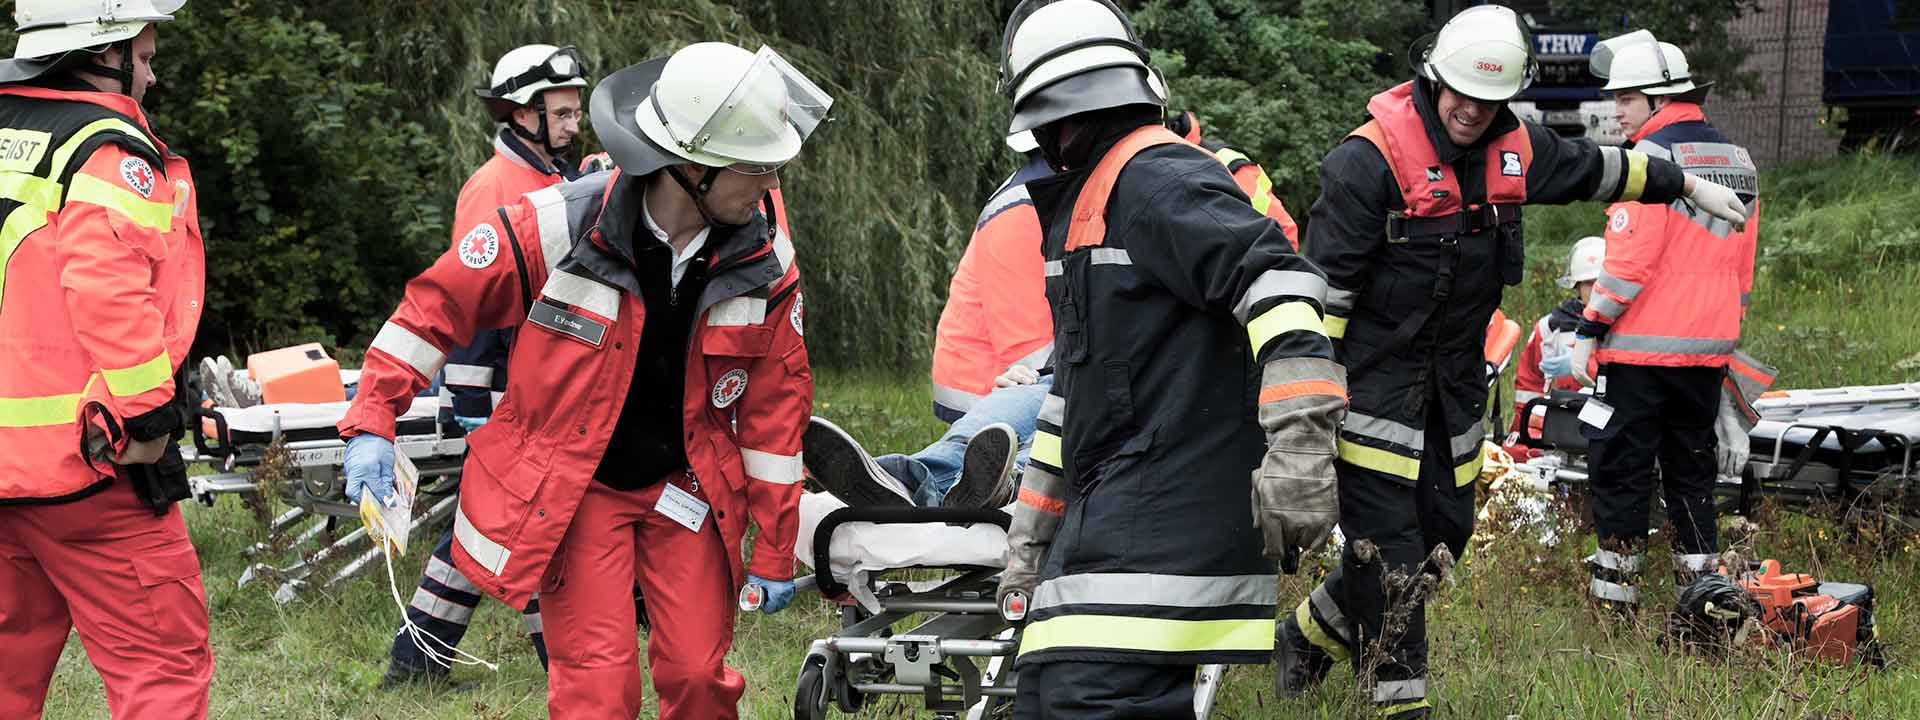 [Translate to Francais:] Civil protection organizations, aid agencies, volunteer fire services